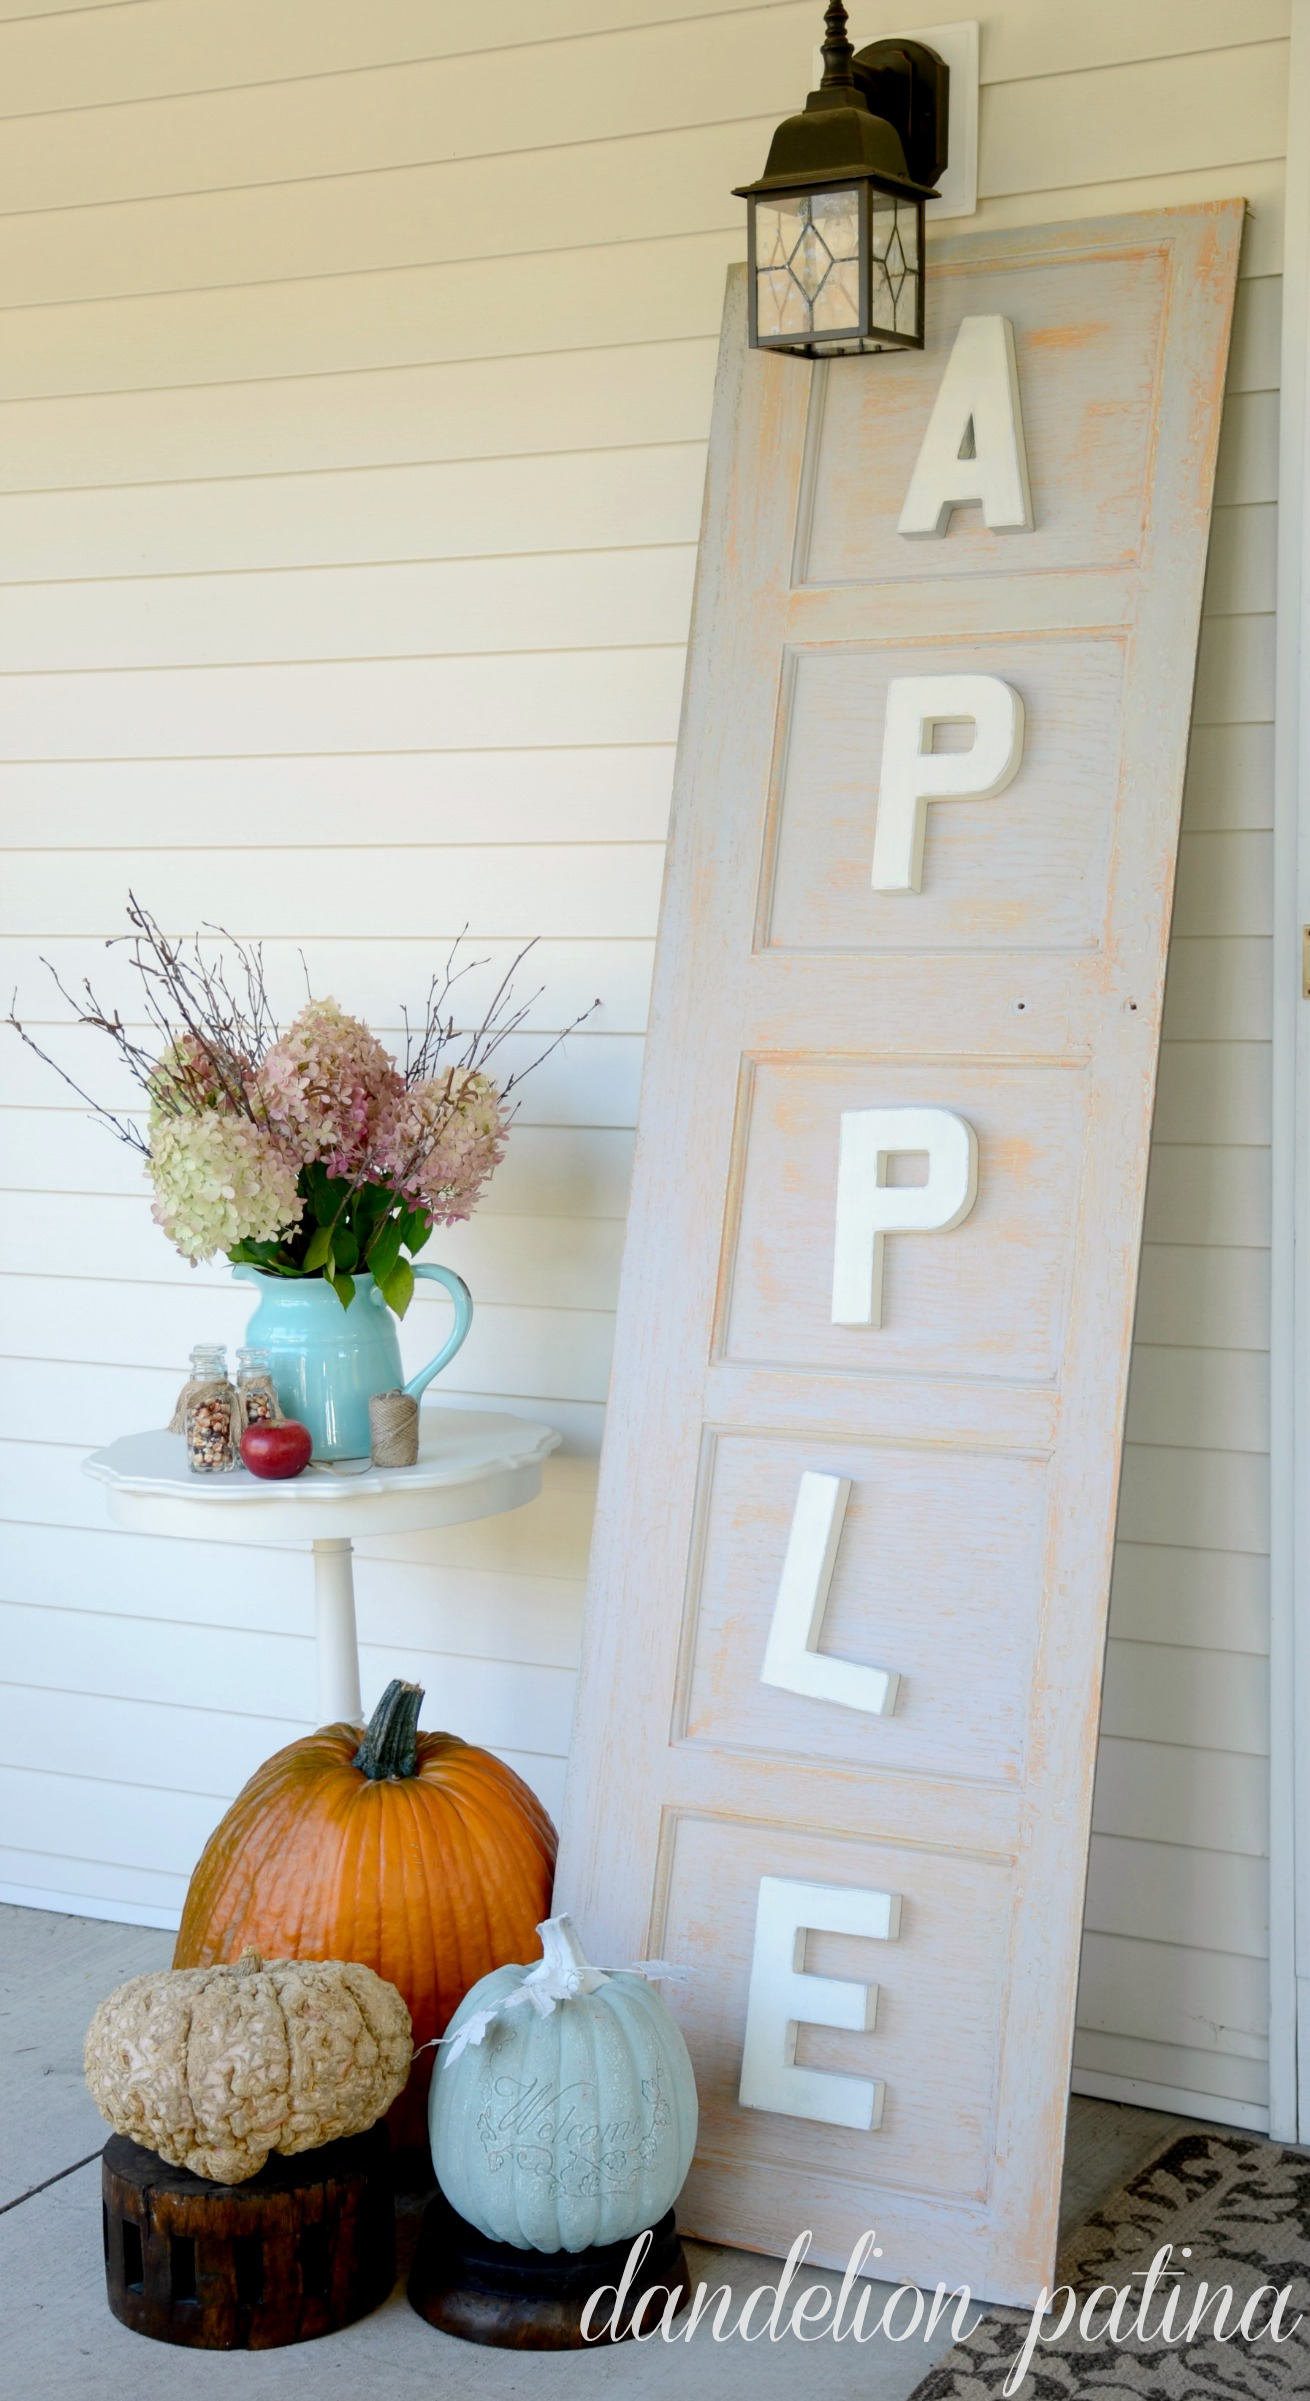 apple cider sign by dandelion patina